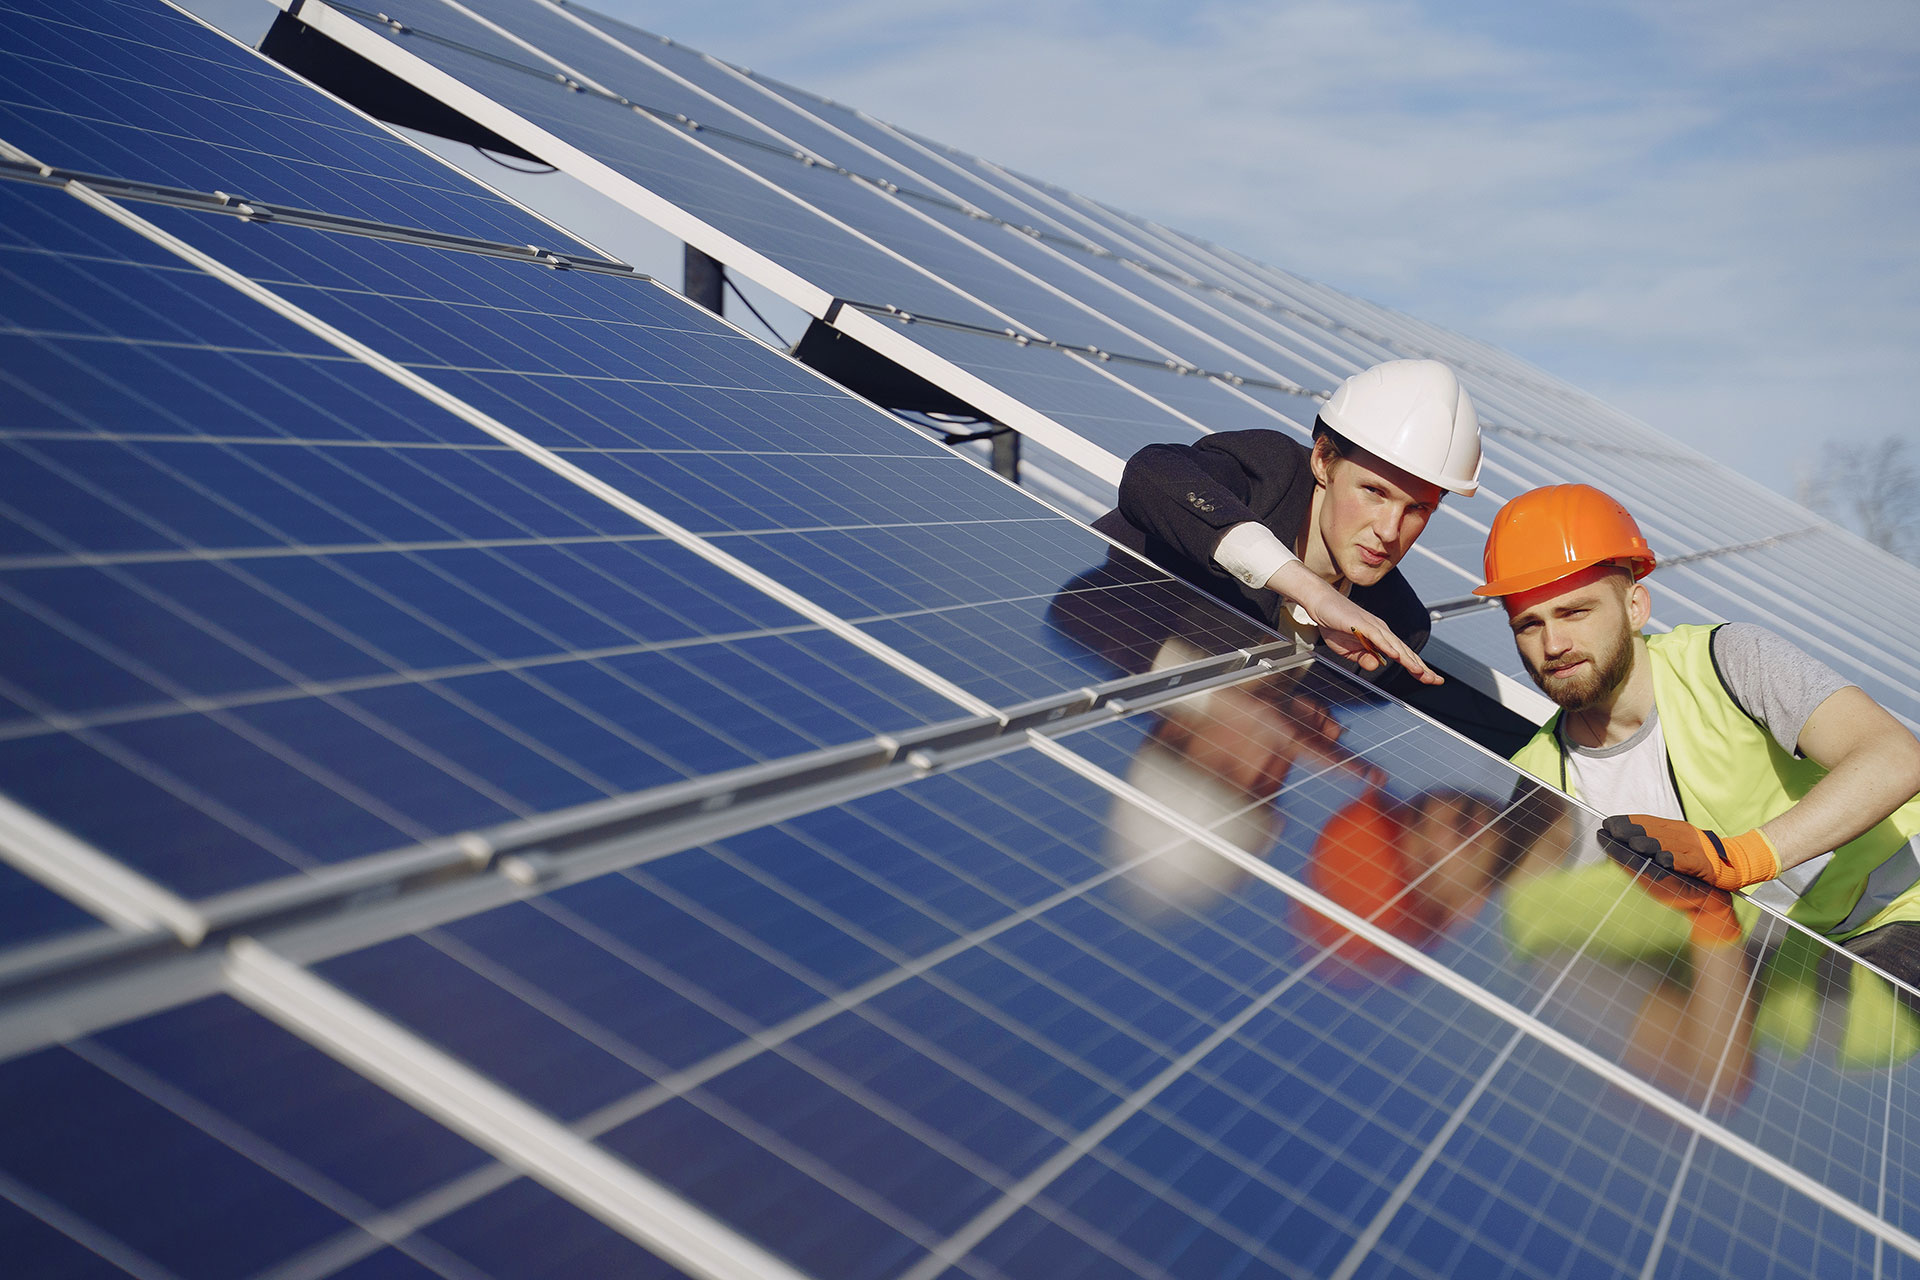 foreman-and-businessman-at-solar-energy-station